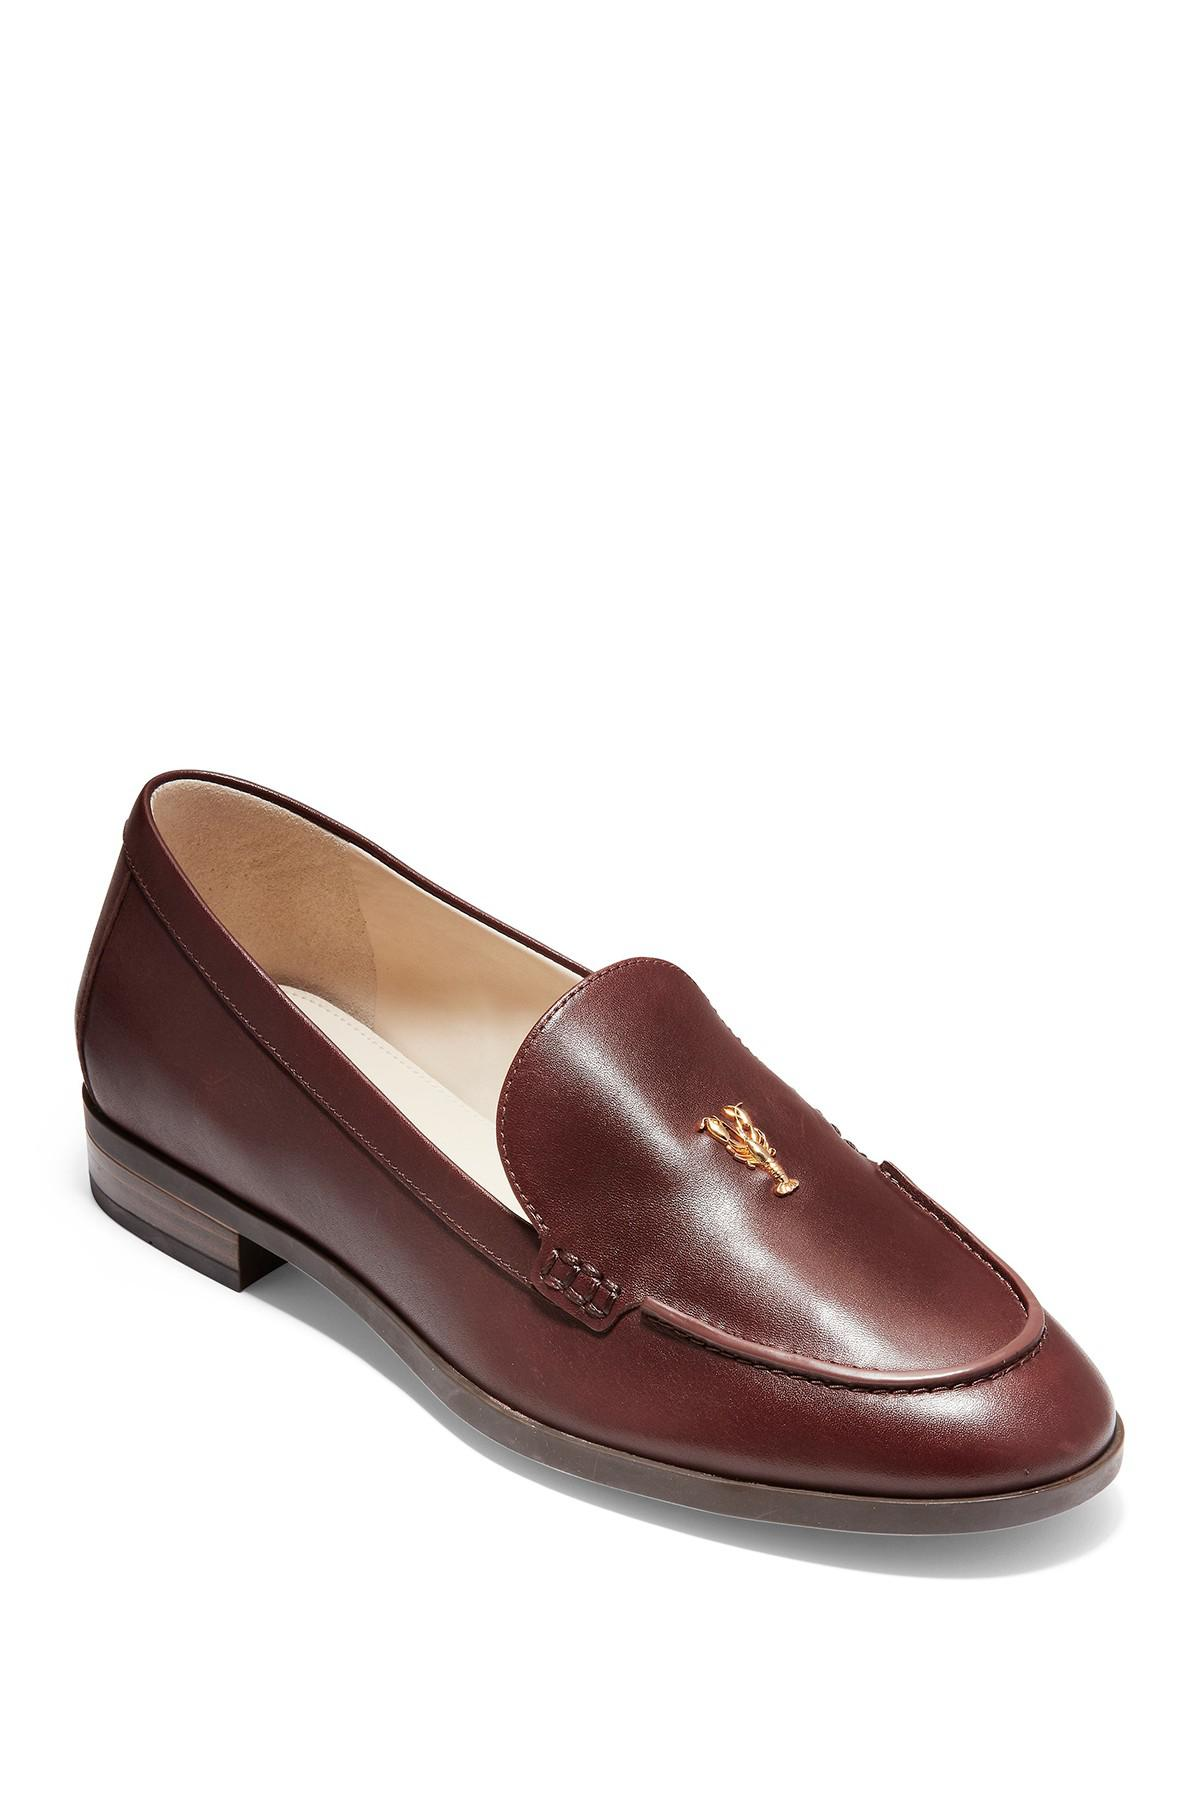 a9533ce3d76 Cole Haan. Women s Pinch Lobster Loafer